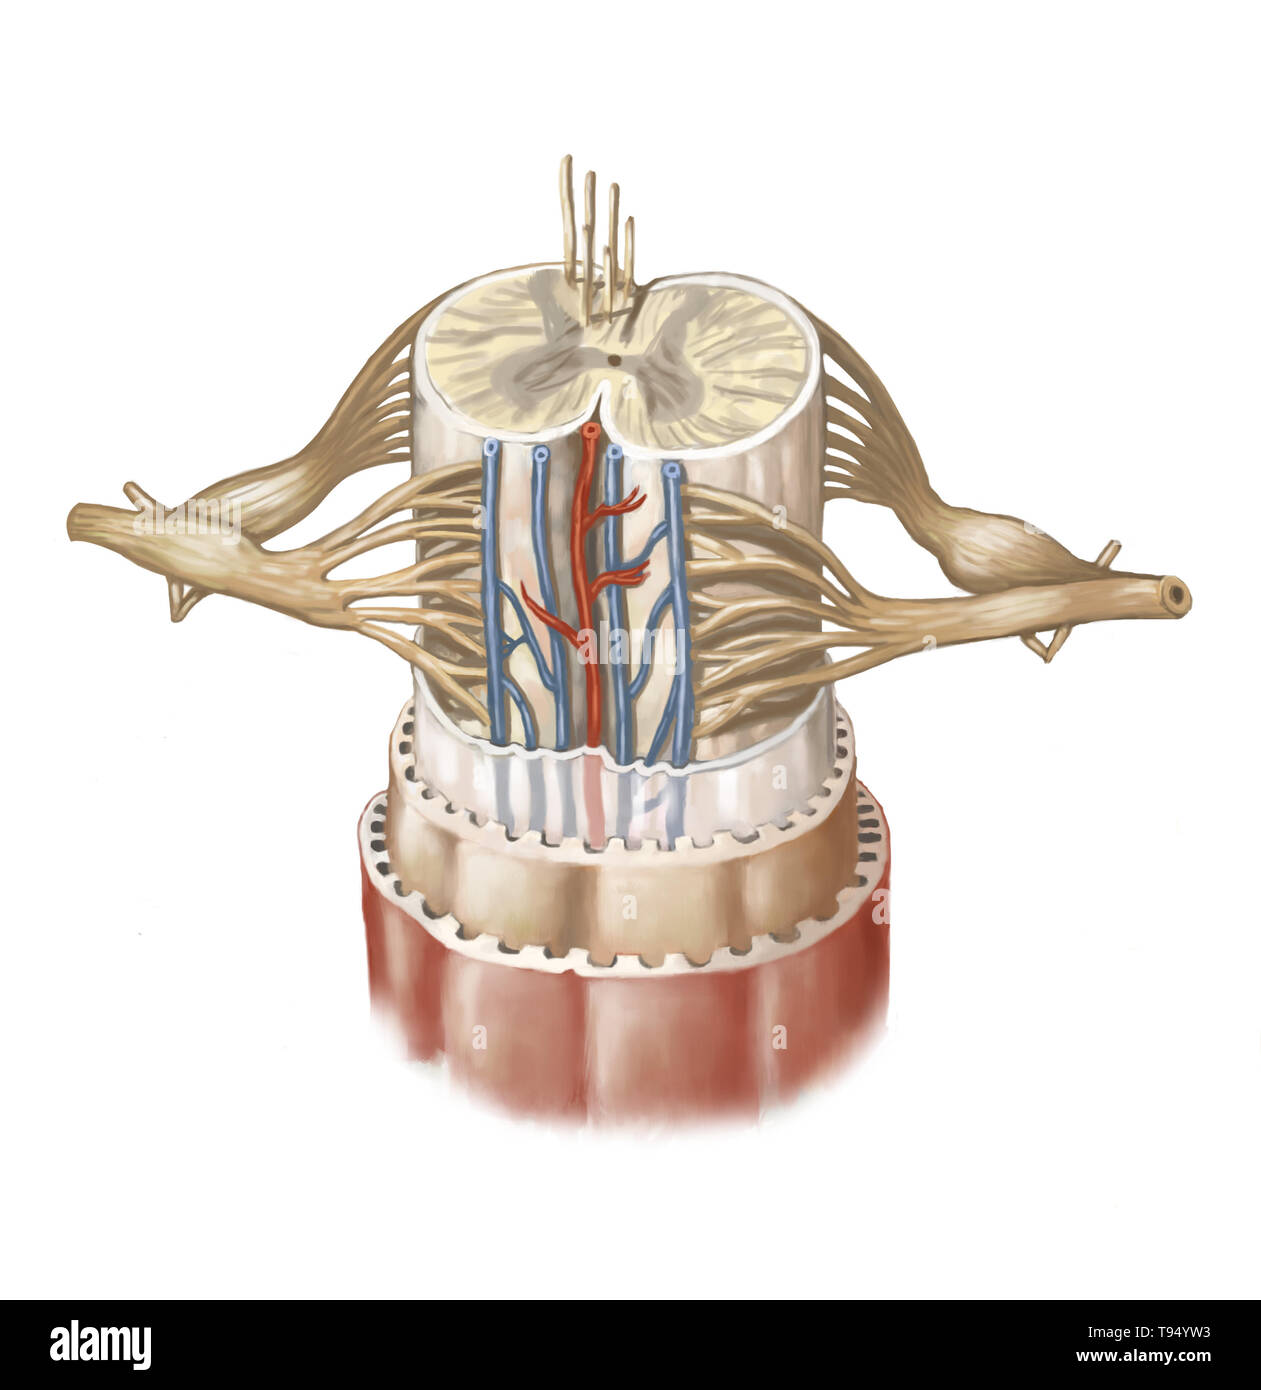 The spinal cord is formed by a cord of nervous tissue more than 16 inches (40 cm) in length located in the vertebral canal, inside the spinal column. It spans from the spinal bulb to the second lumbar vertebra and is extended by a collection of nervous fibers, the cauda equina. Composed of motor and sensory neurons, the spinal cord ensures the transmission of messages between the spinal nerves and the brain, in addition to being a reflex center. Stock Photo